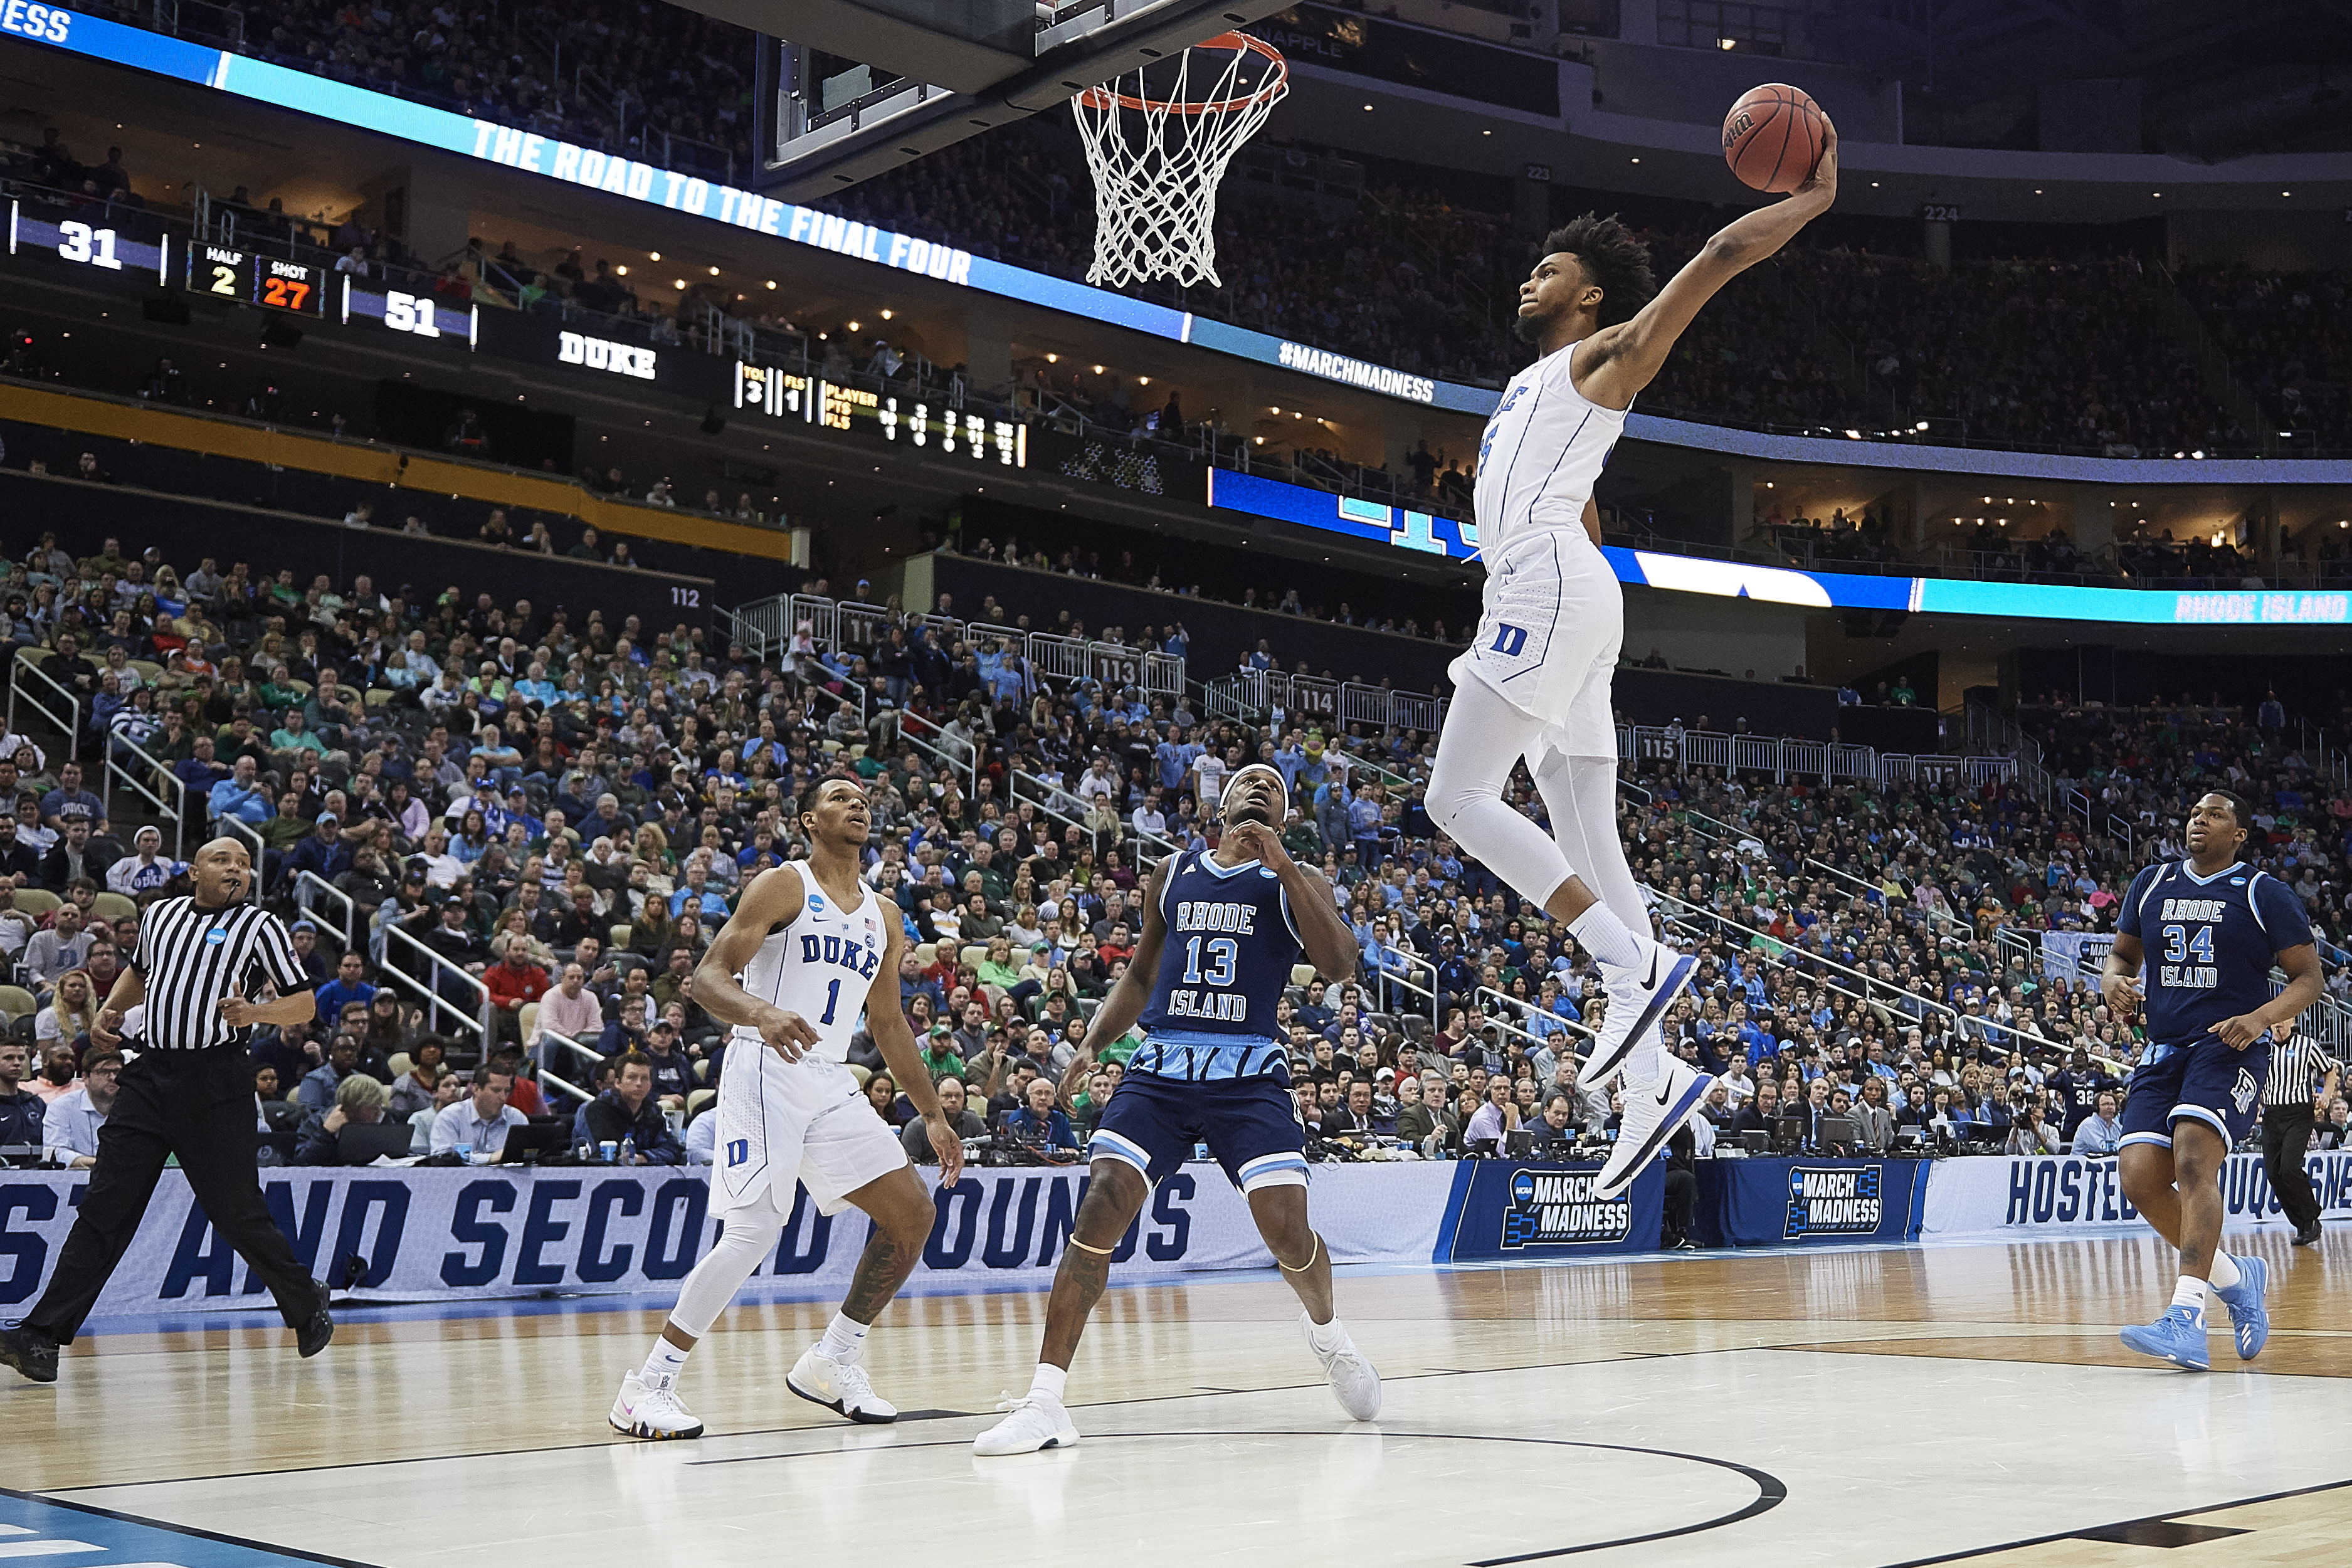 how to watch the ncaa march madness sweet 16 games for free online